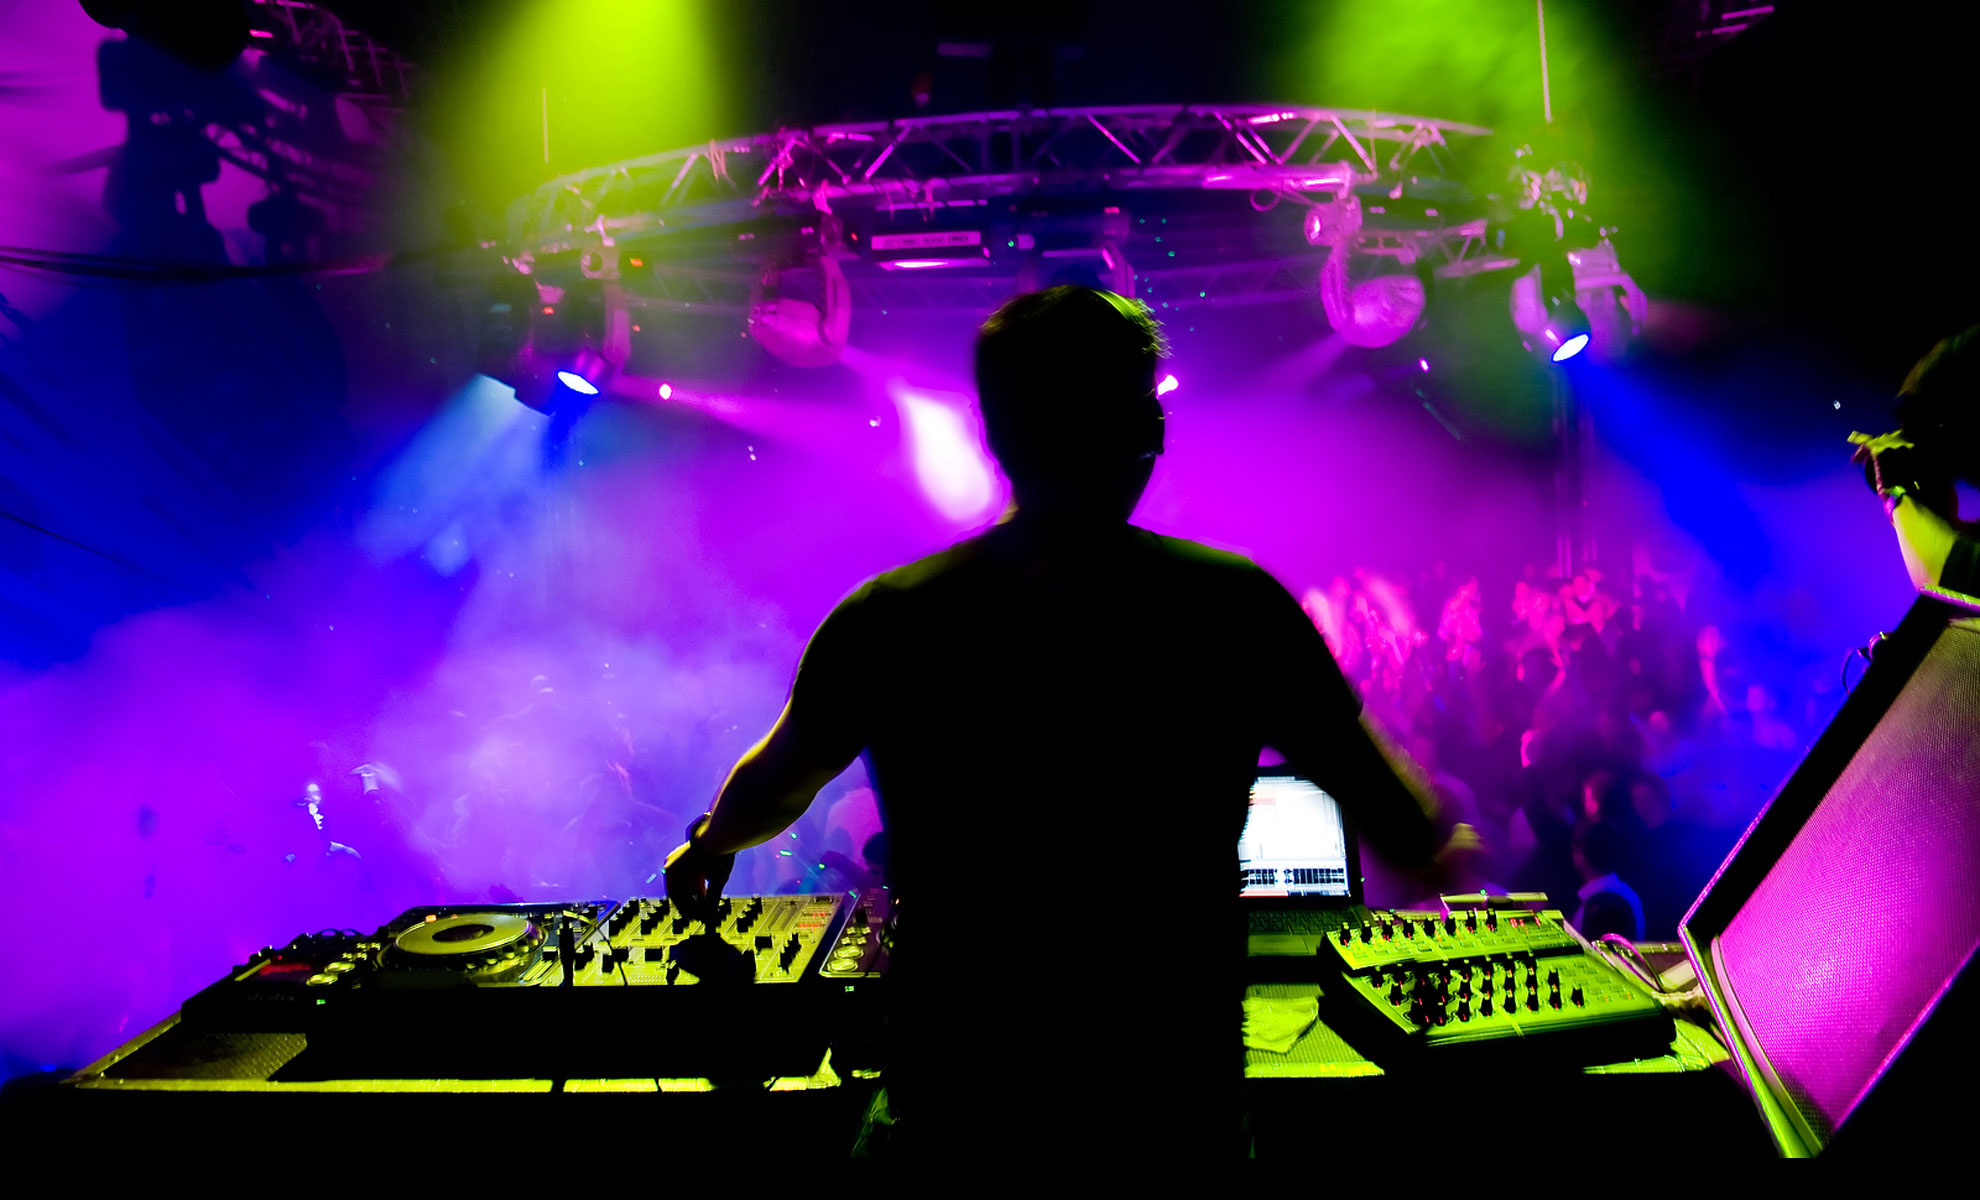 DJ Services & Large Production Services image - Jacksonville, FL